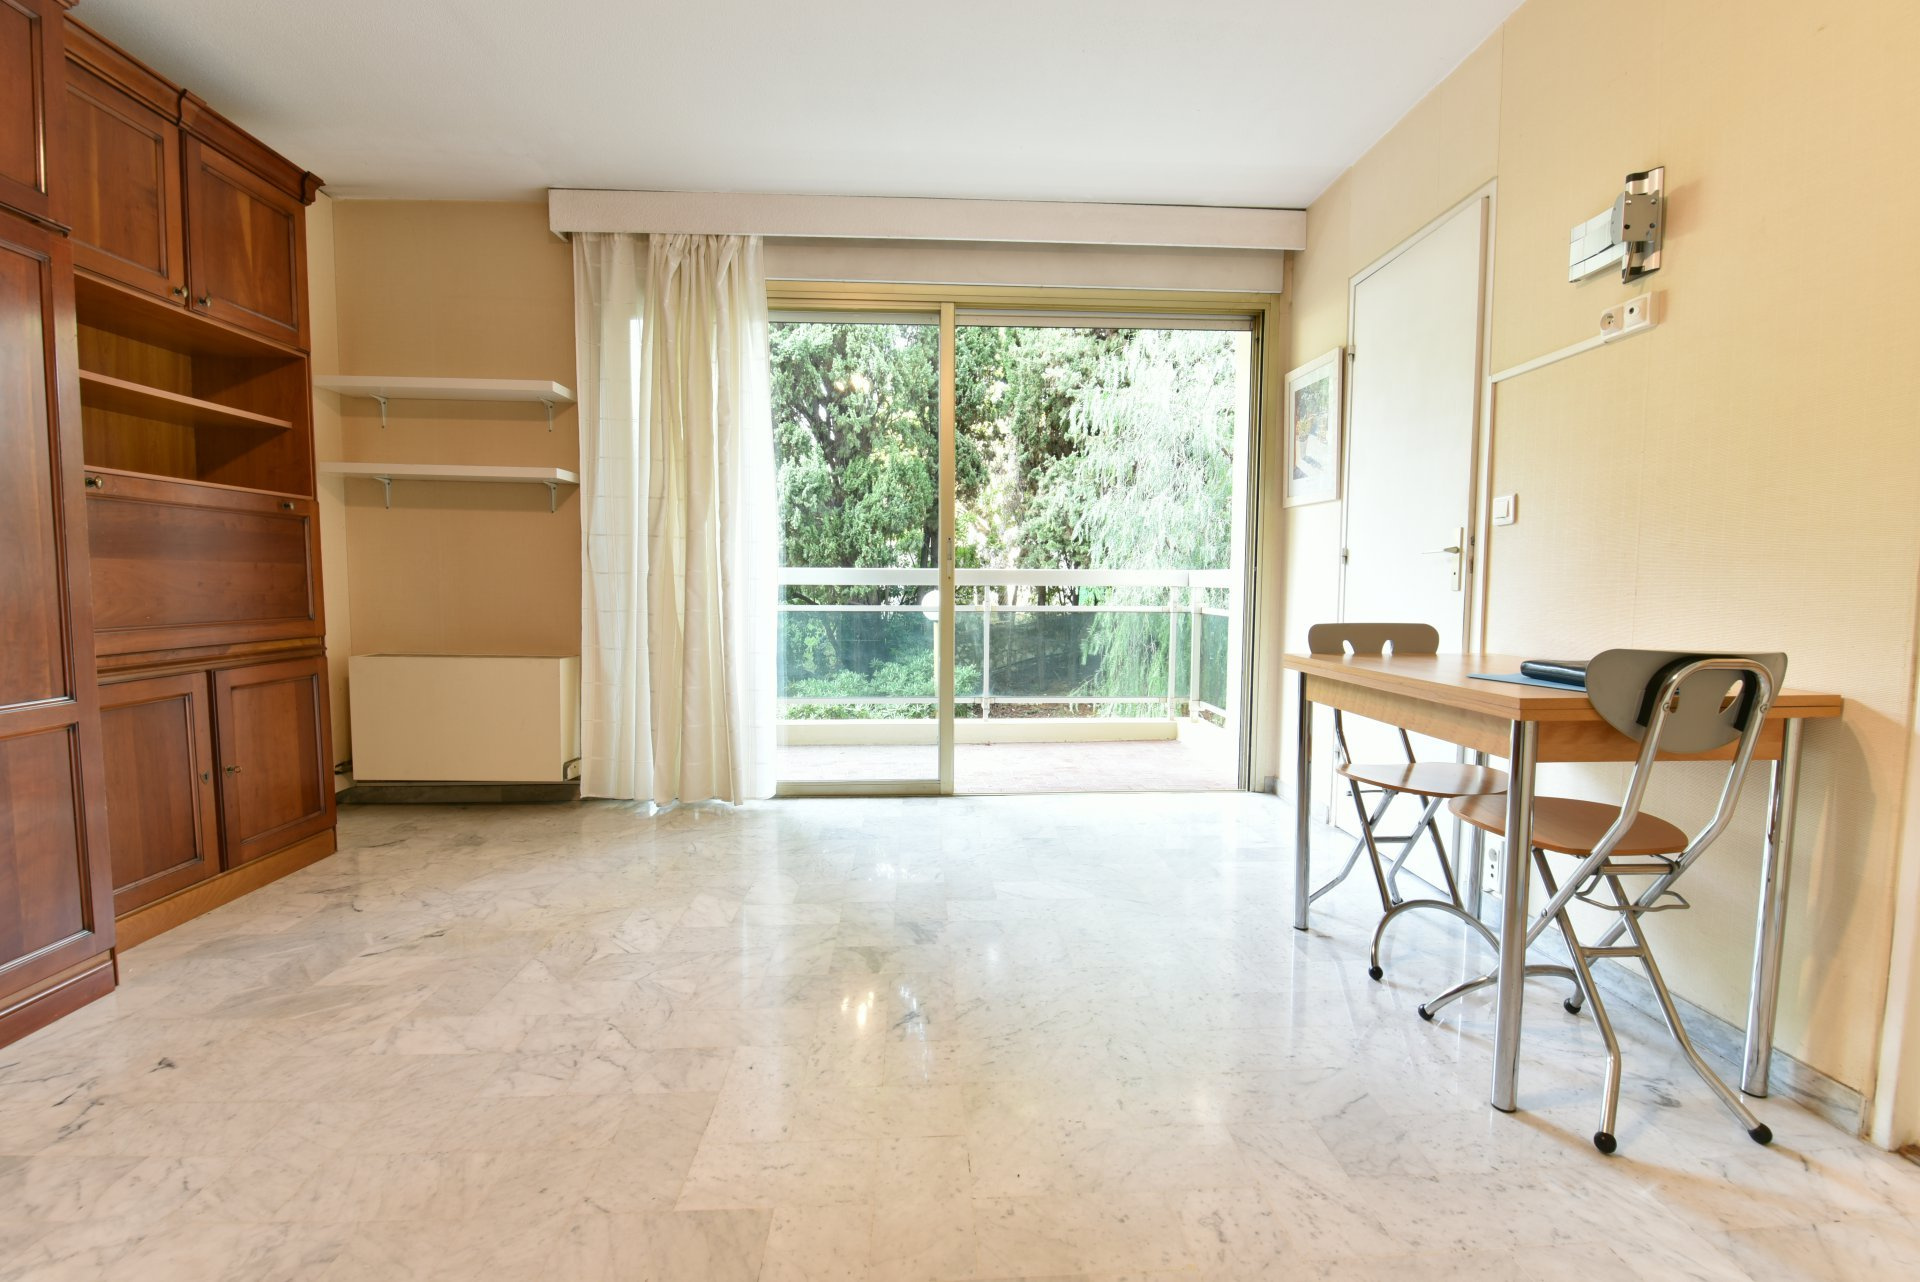 property_areas:22 : property_flooring:2